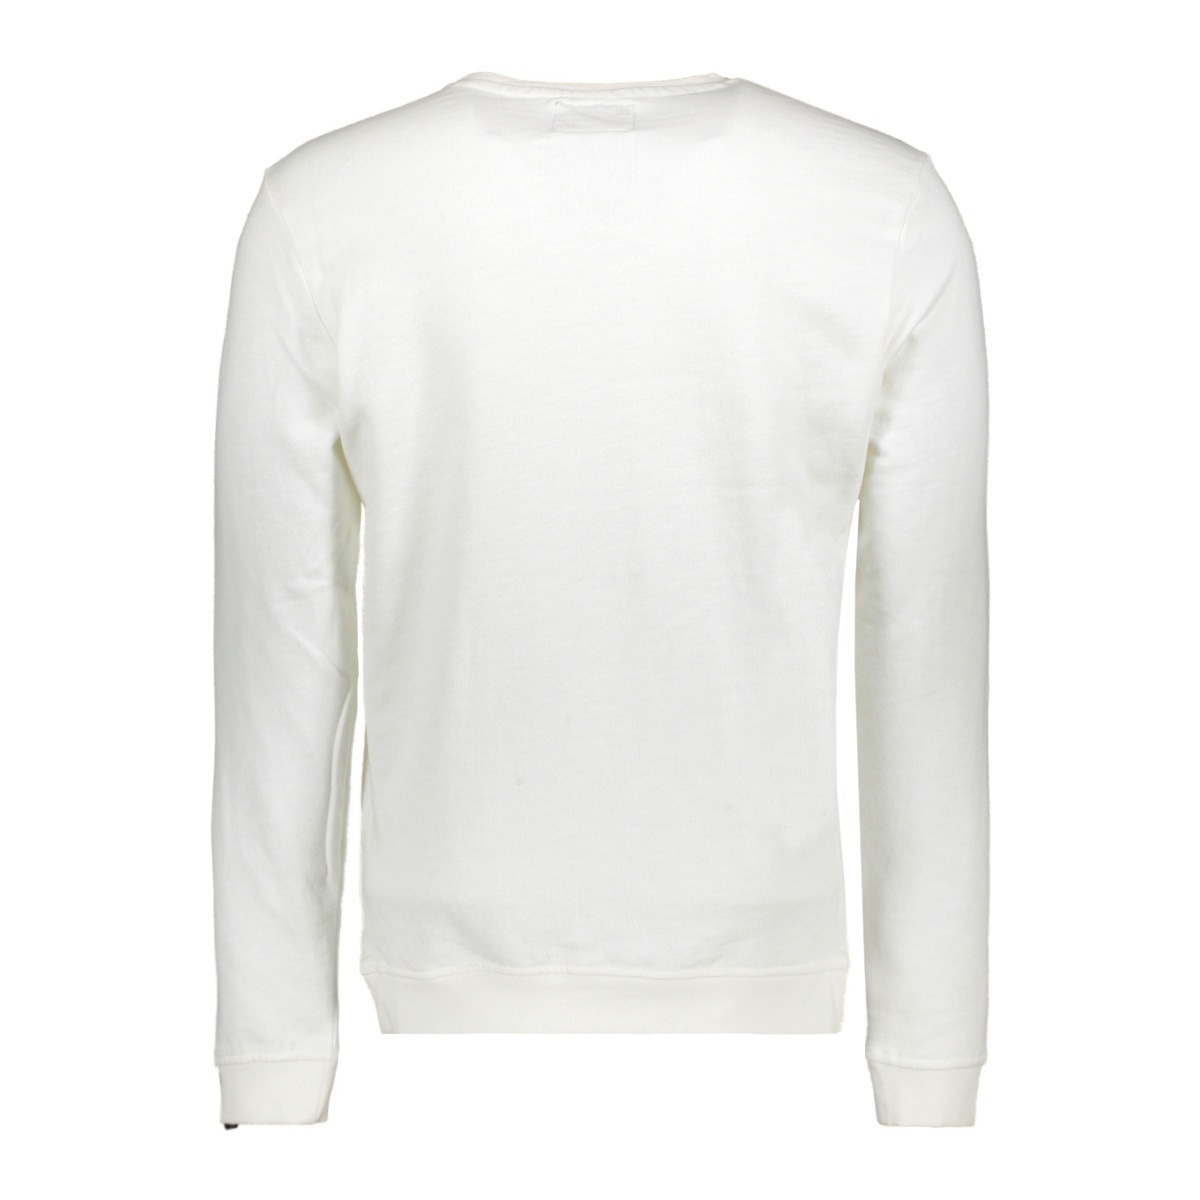 83101010 no-excess sweater 168